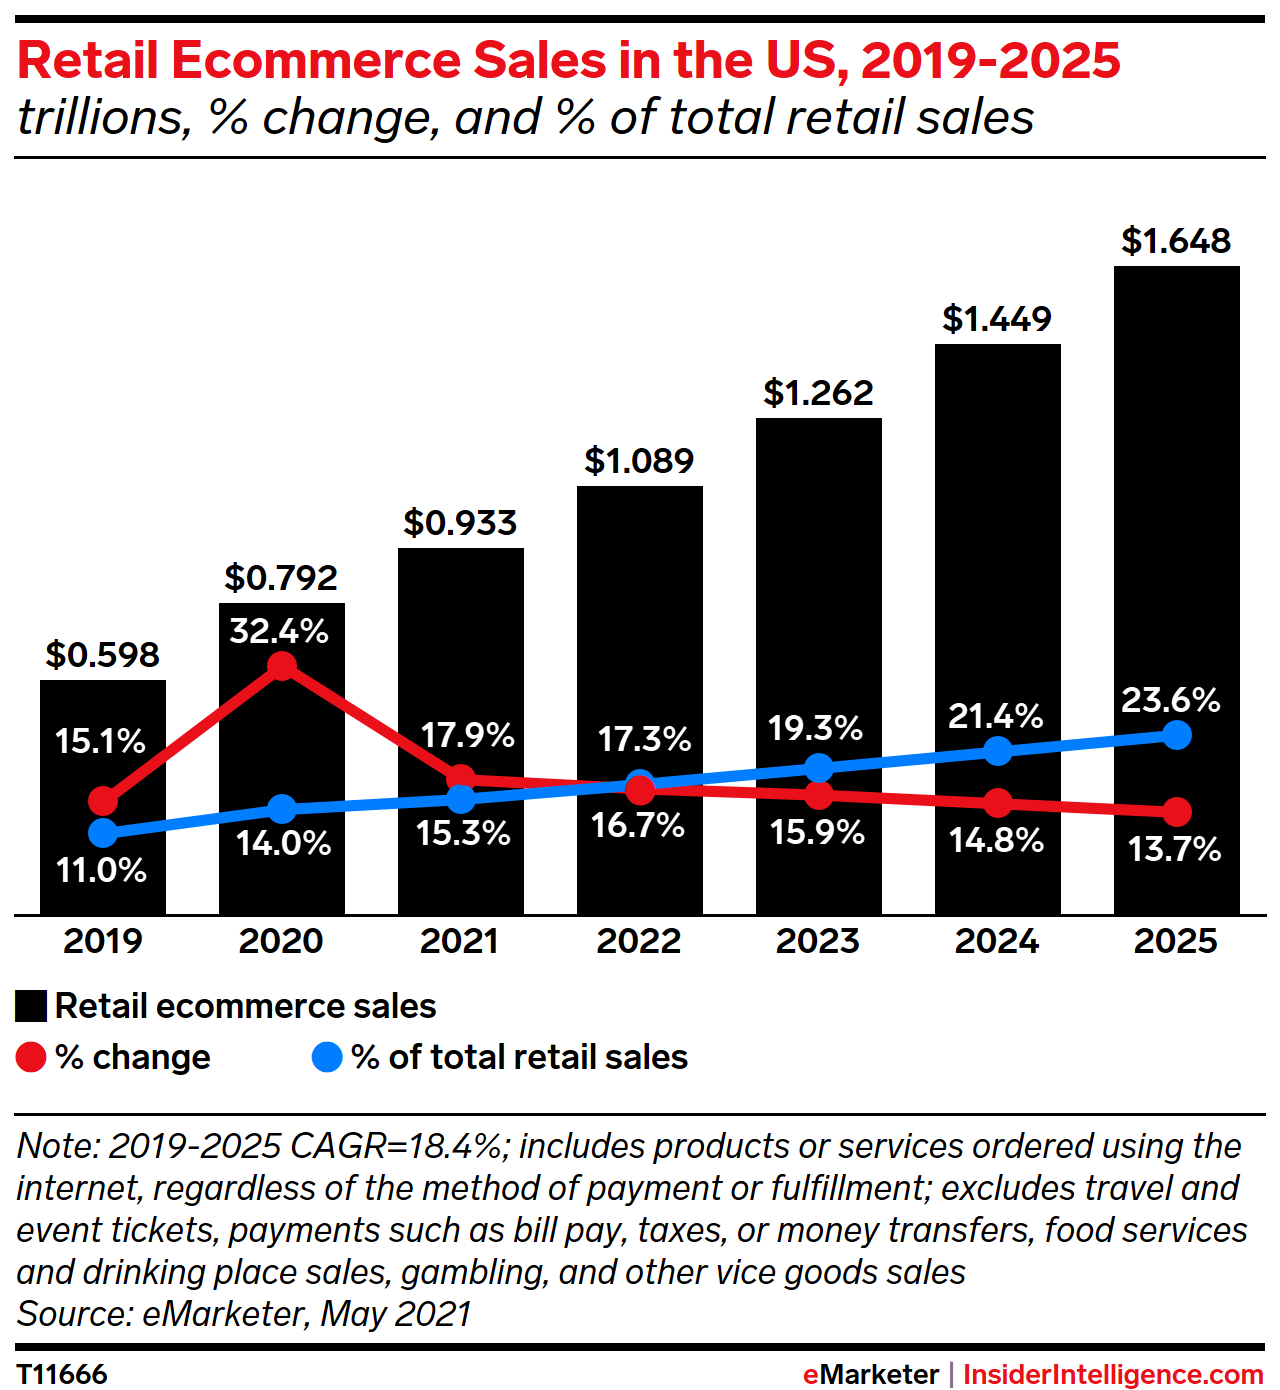 Retail Ecommerce Sales in the US, 2019-2025 (billions, % change, and % of total retail sales)